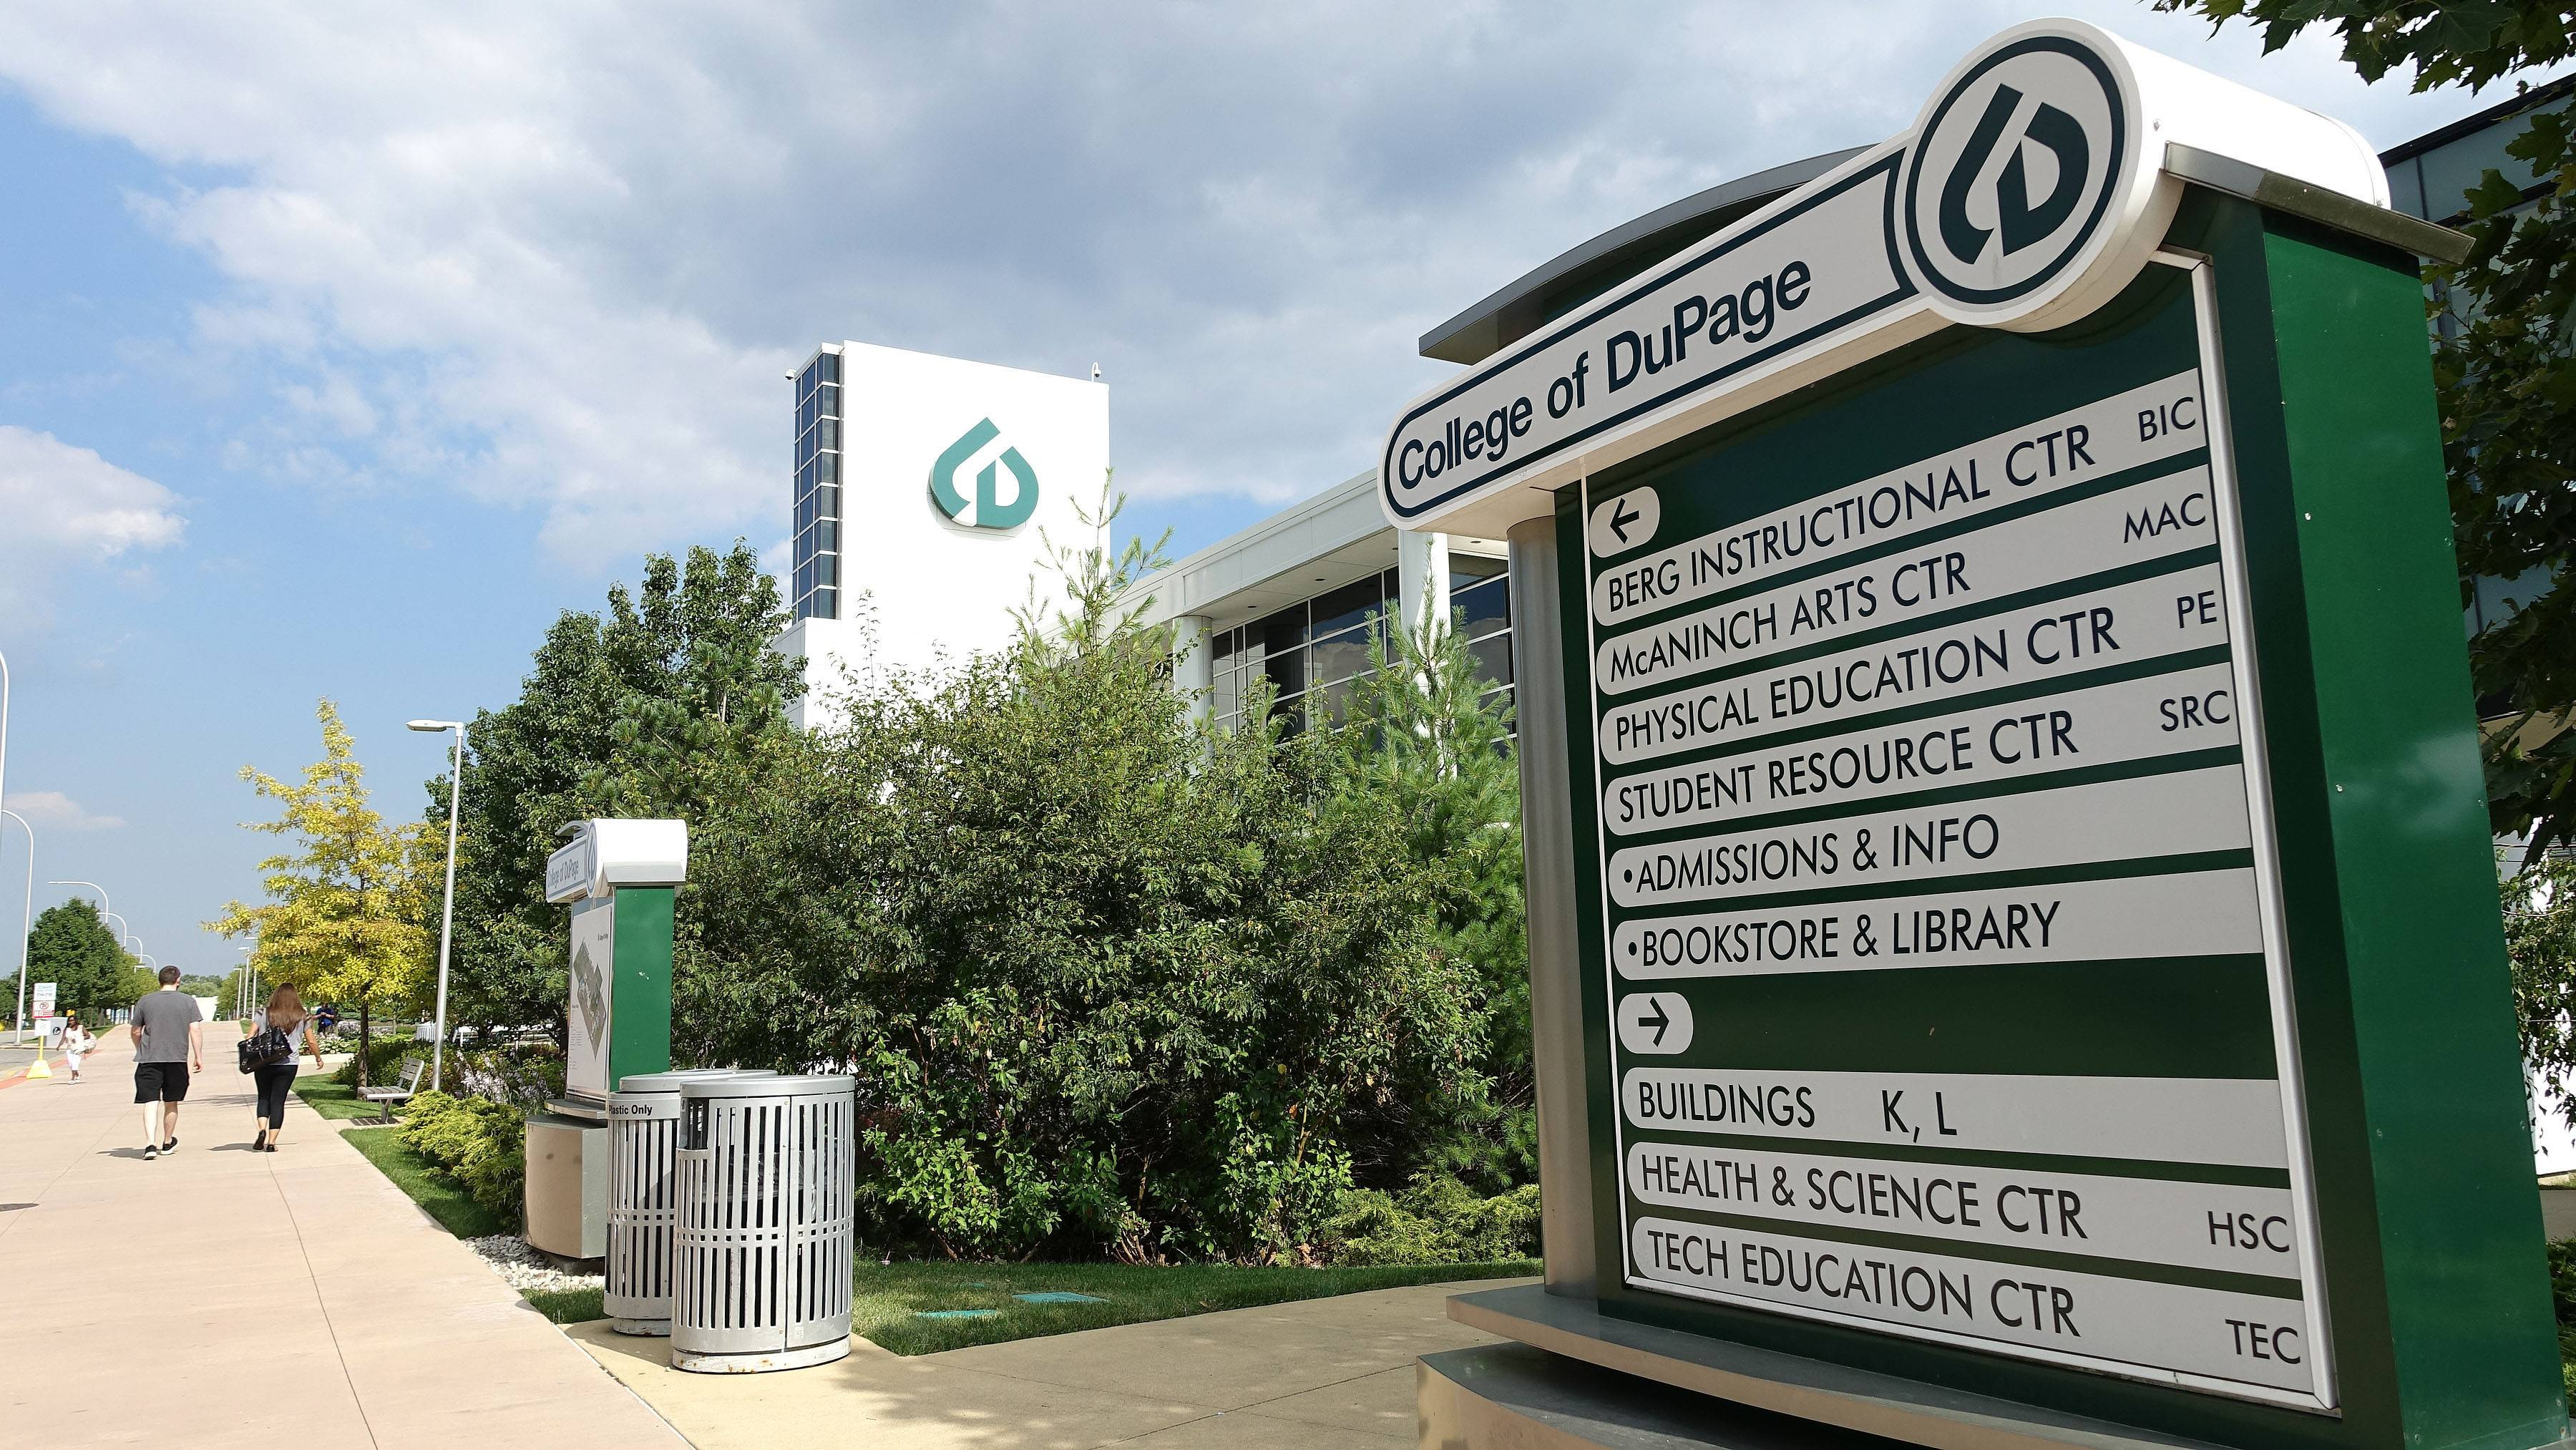 With new trustee on board, College of DuPage gridlock to end